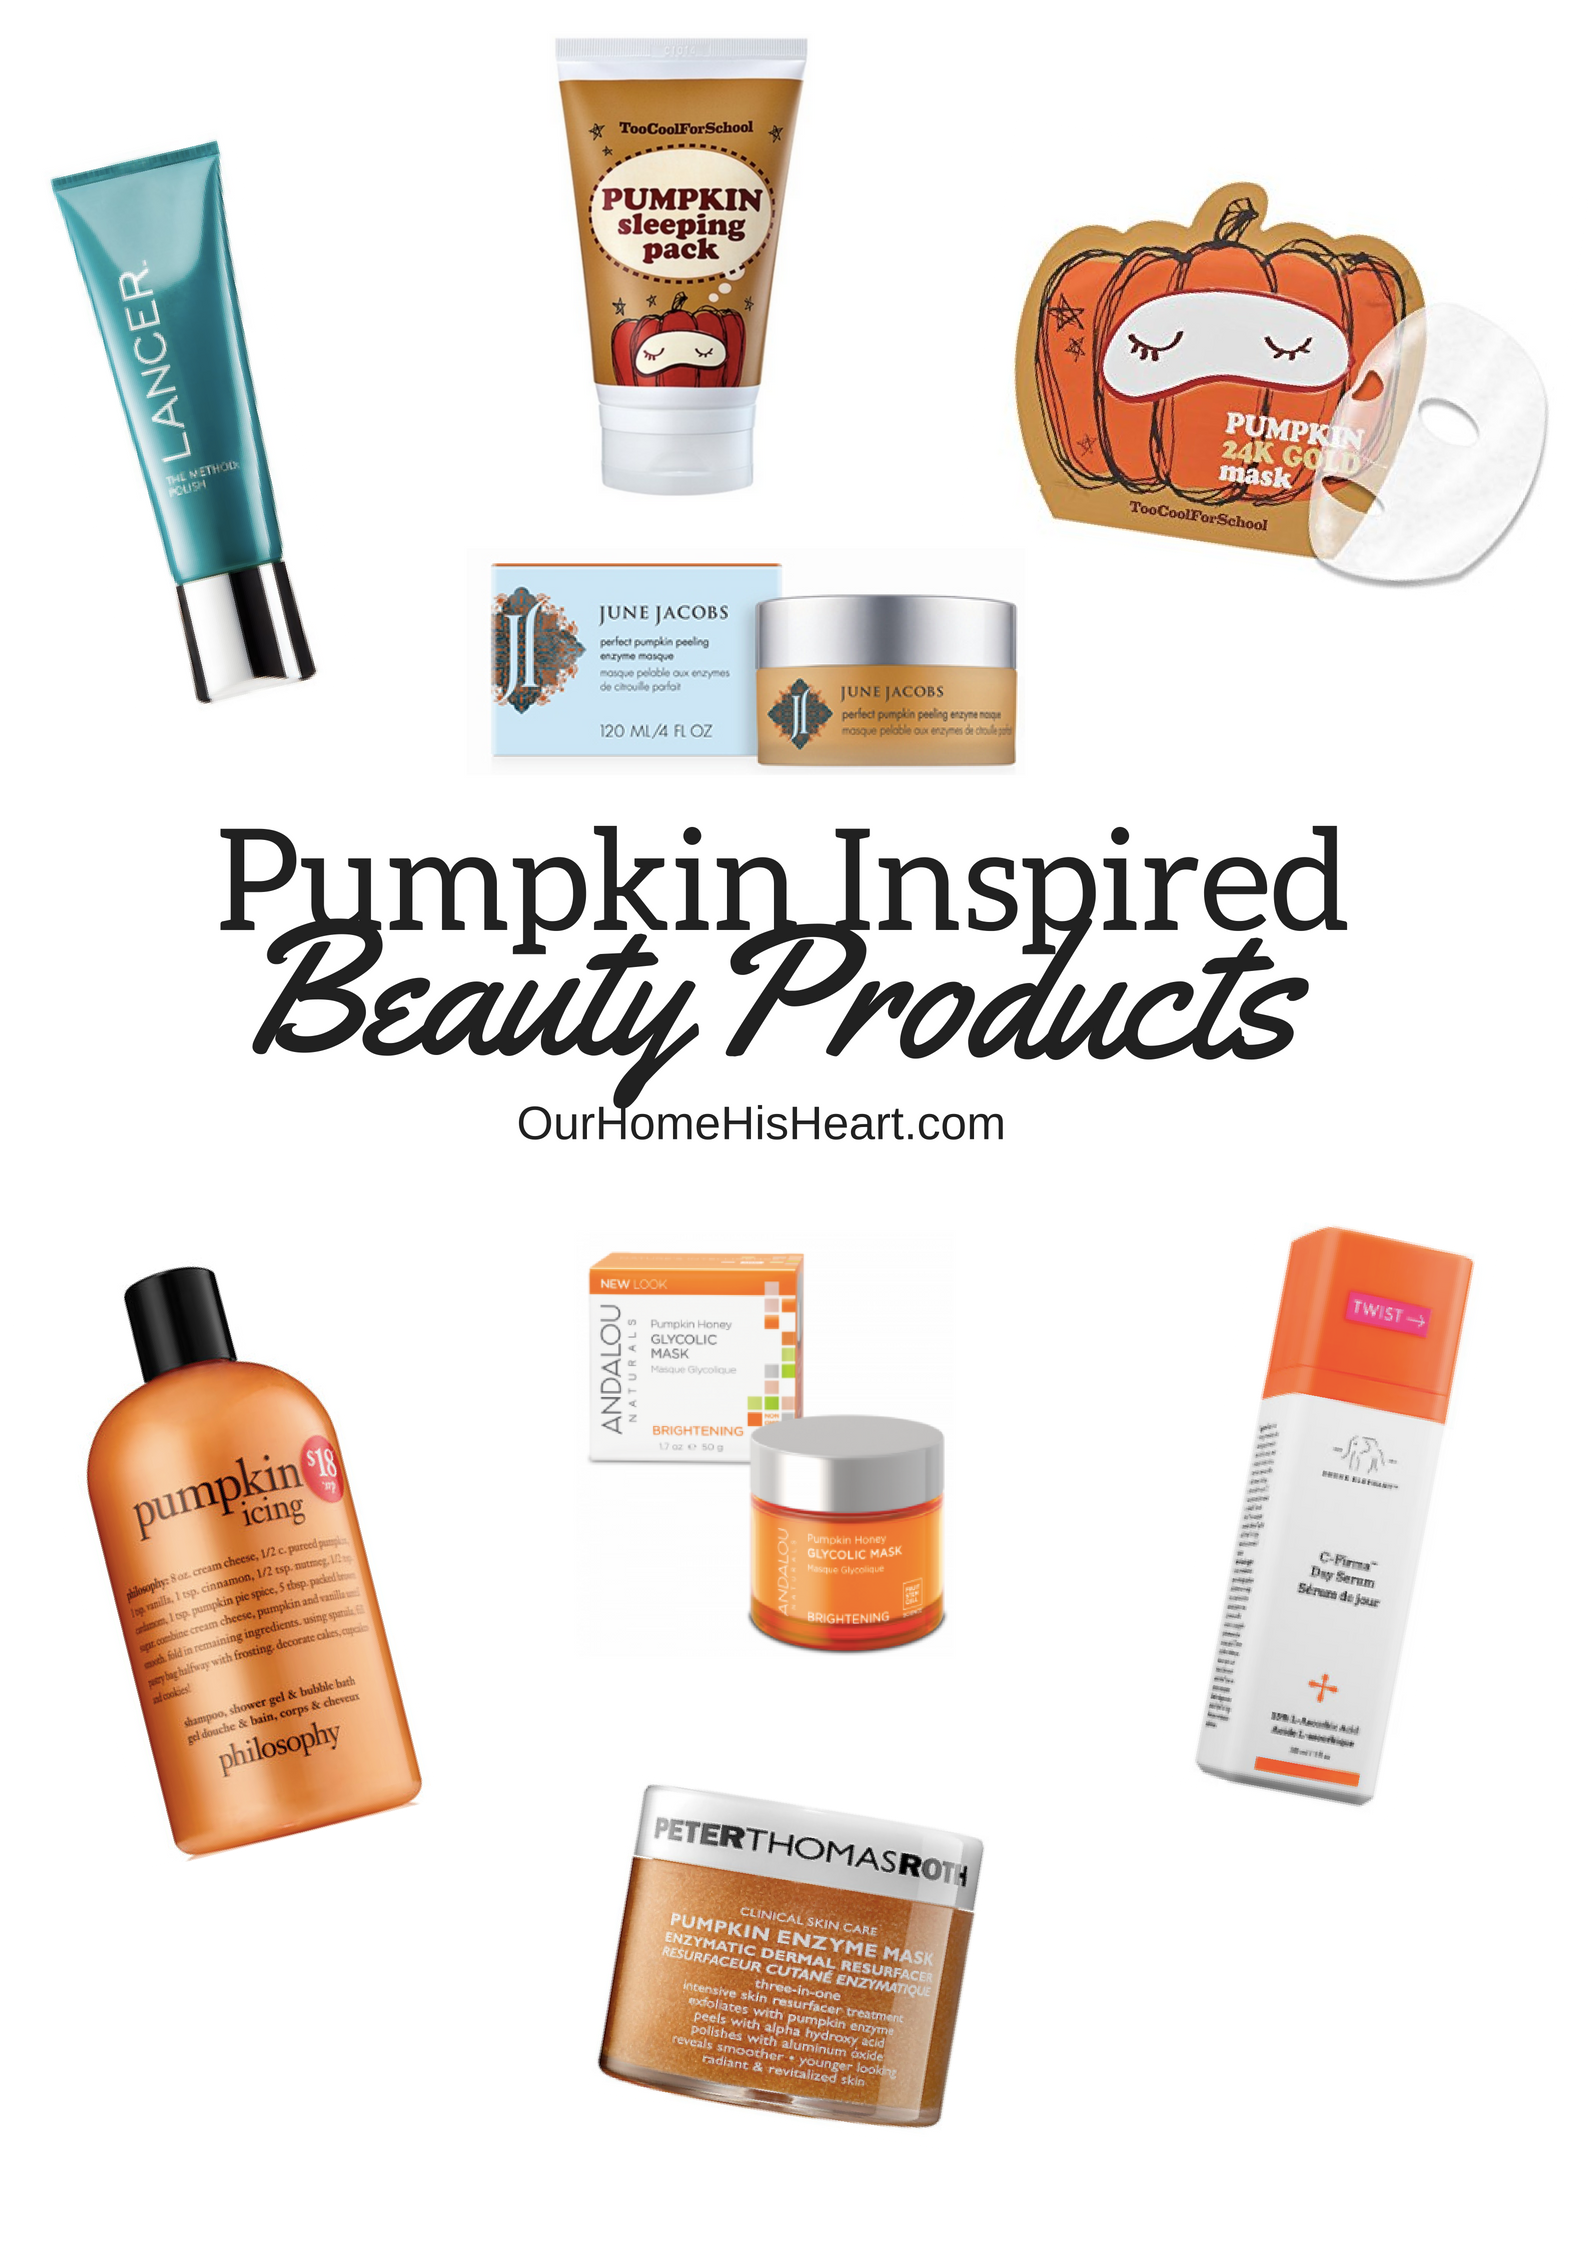 Pumpkin Inspired Beauty Products to Try